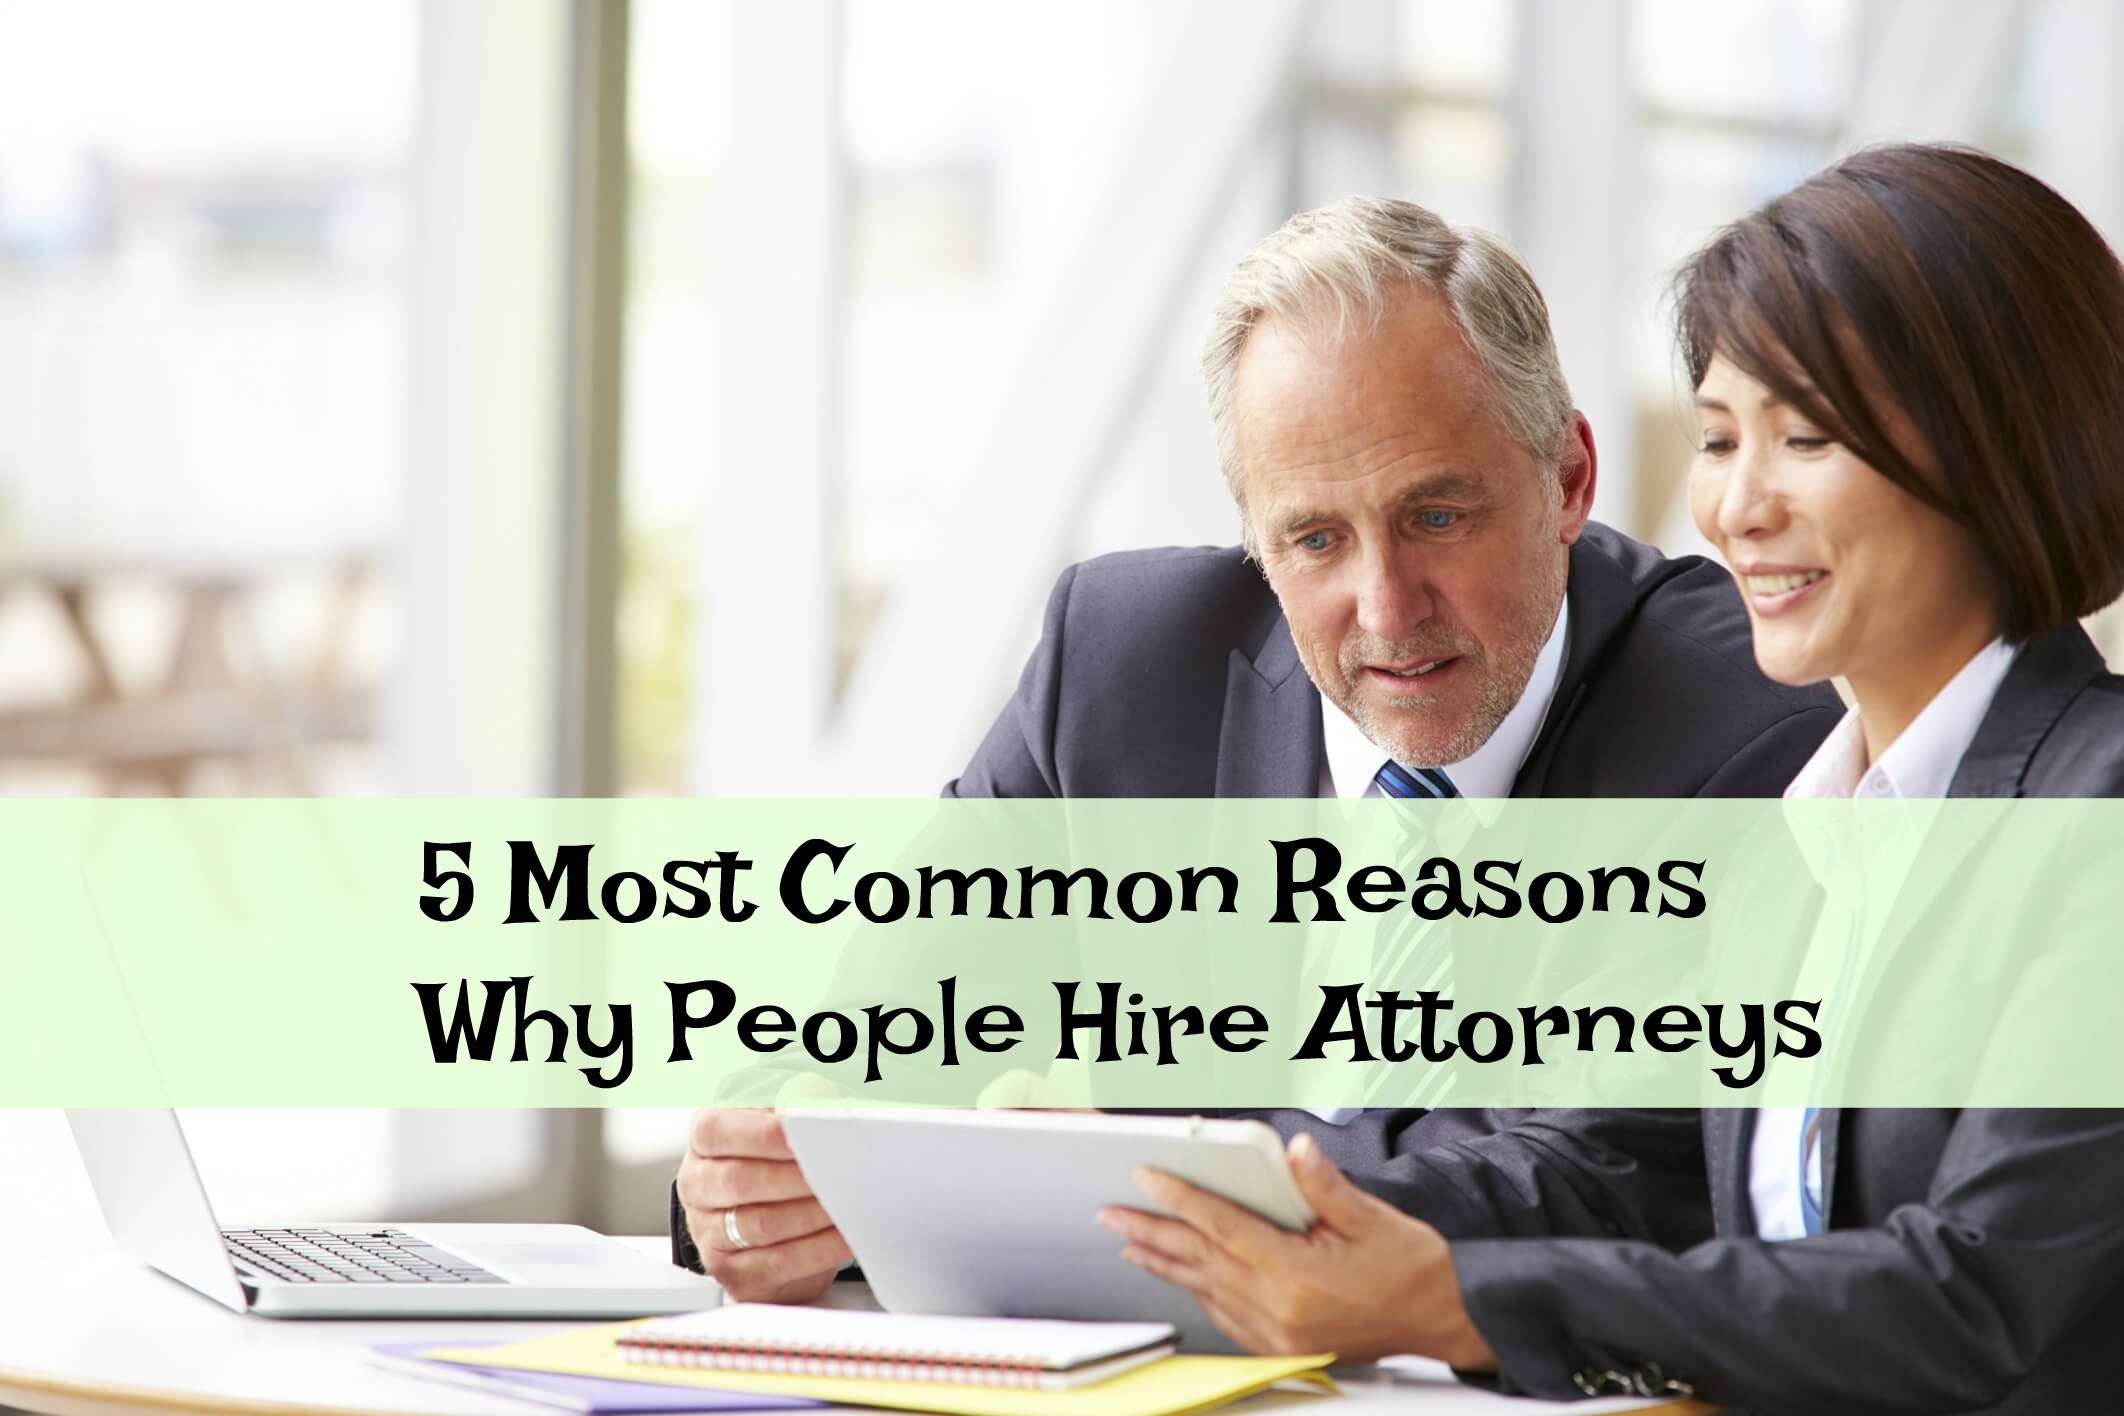 5 Most Common Reasons Why People Hire Attorneys